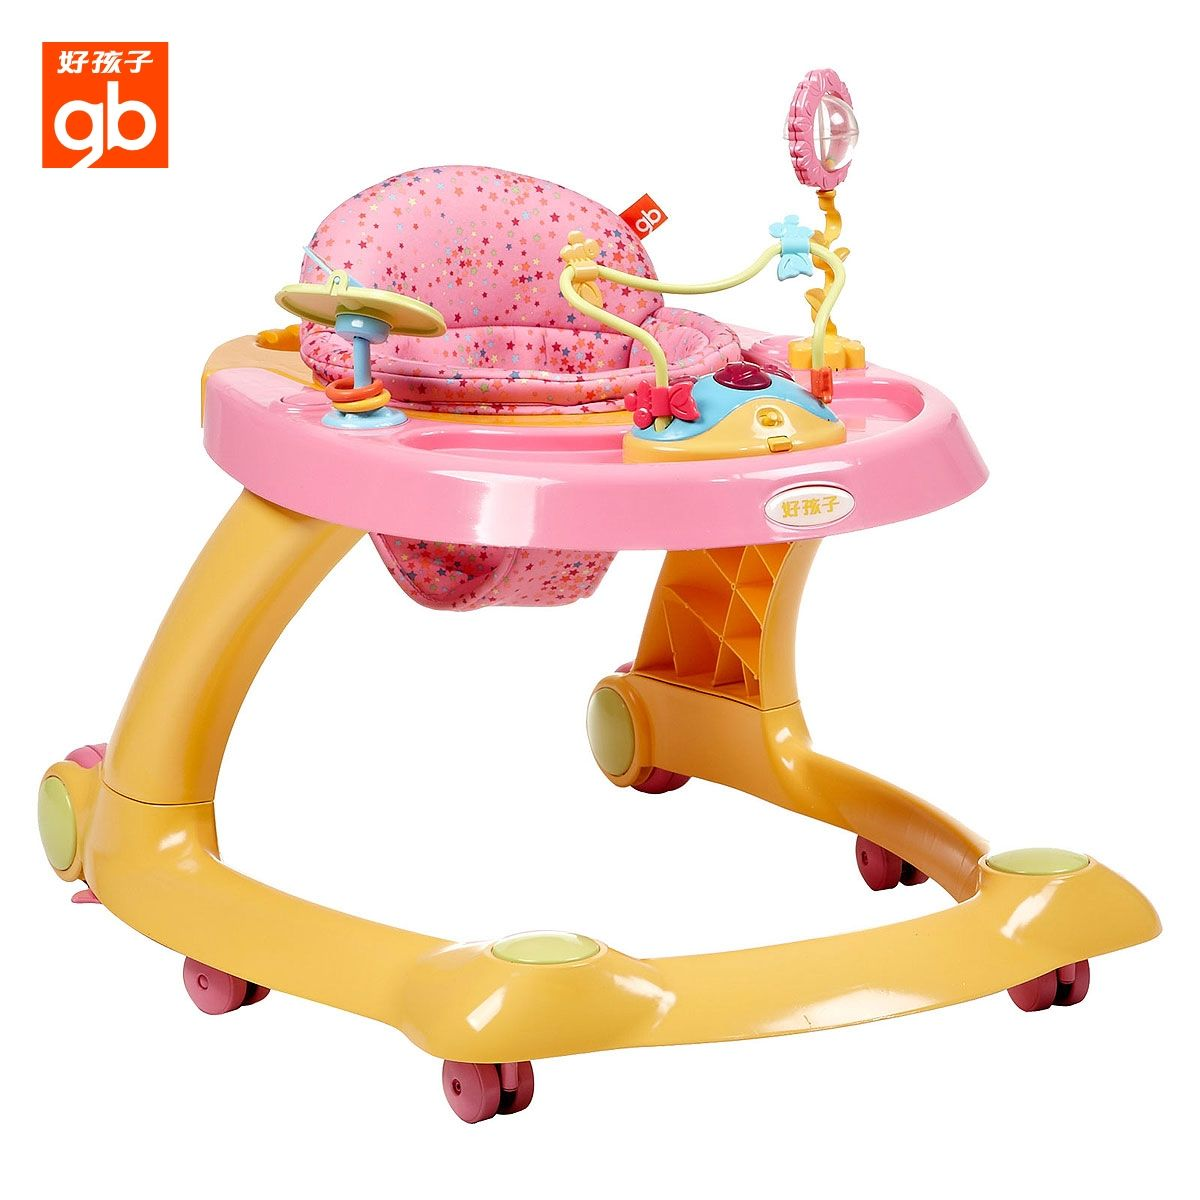 World famous brand gb baby walker XB606 multifunctional folding adjustable toddler trolley Free shipping(China (Mainland))